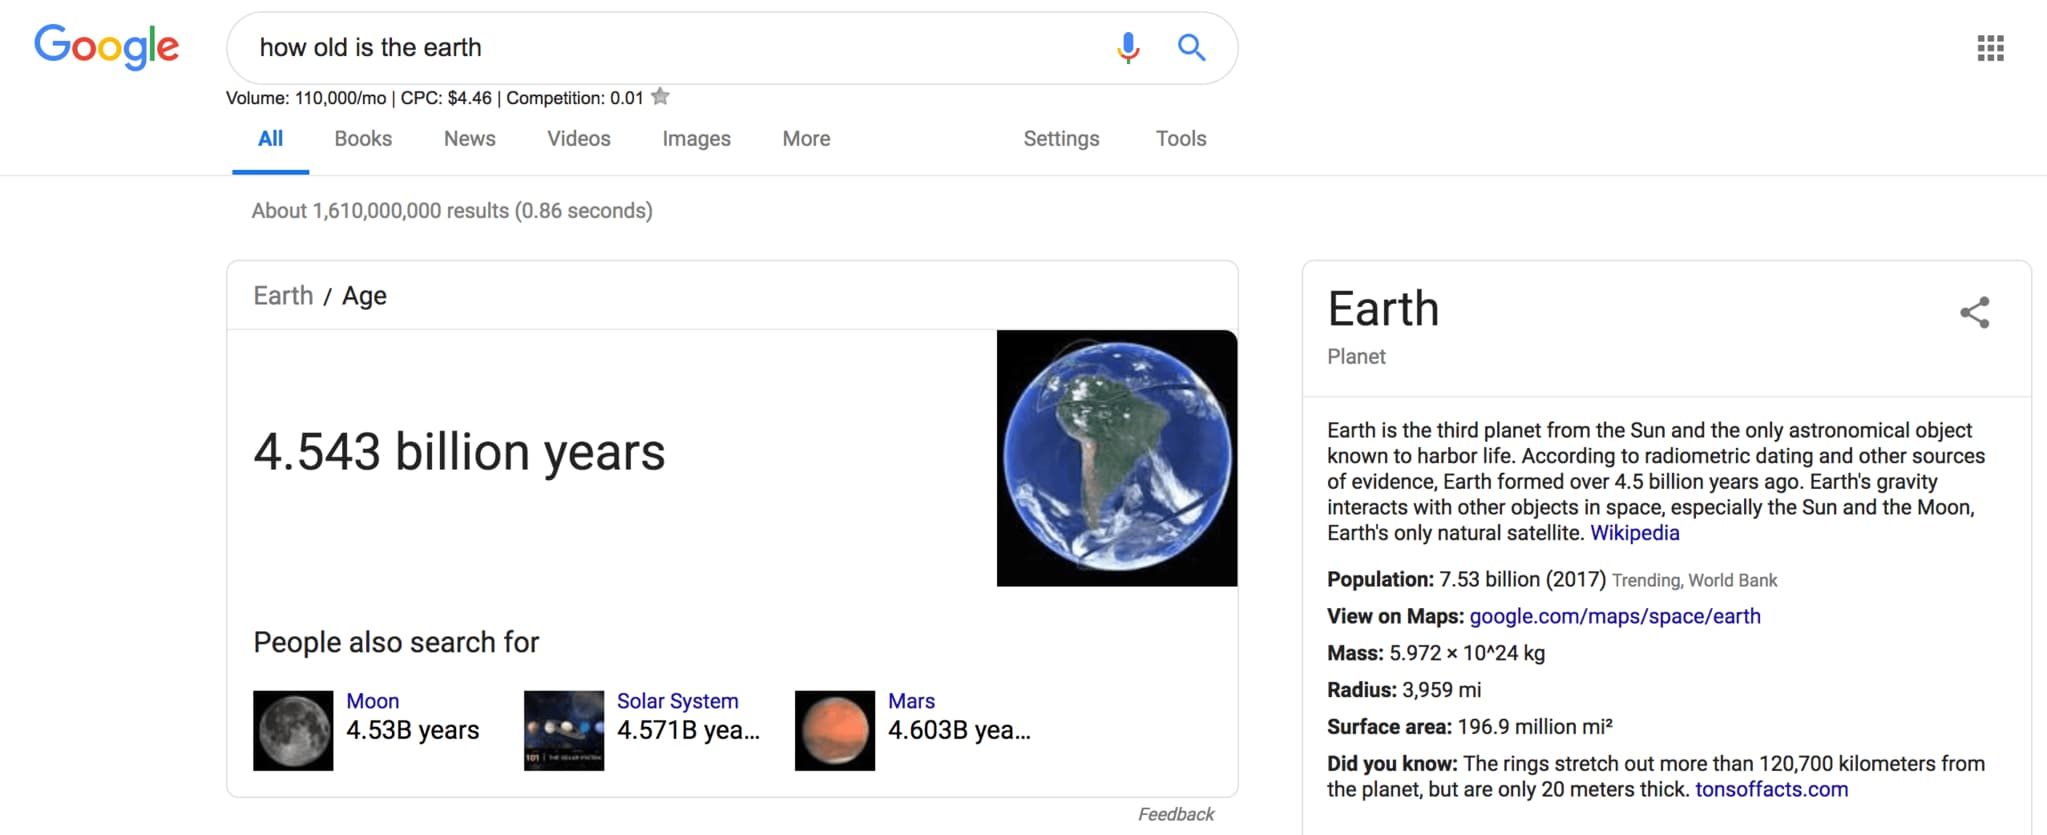 rich answer showing how old the earth is